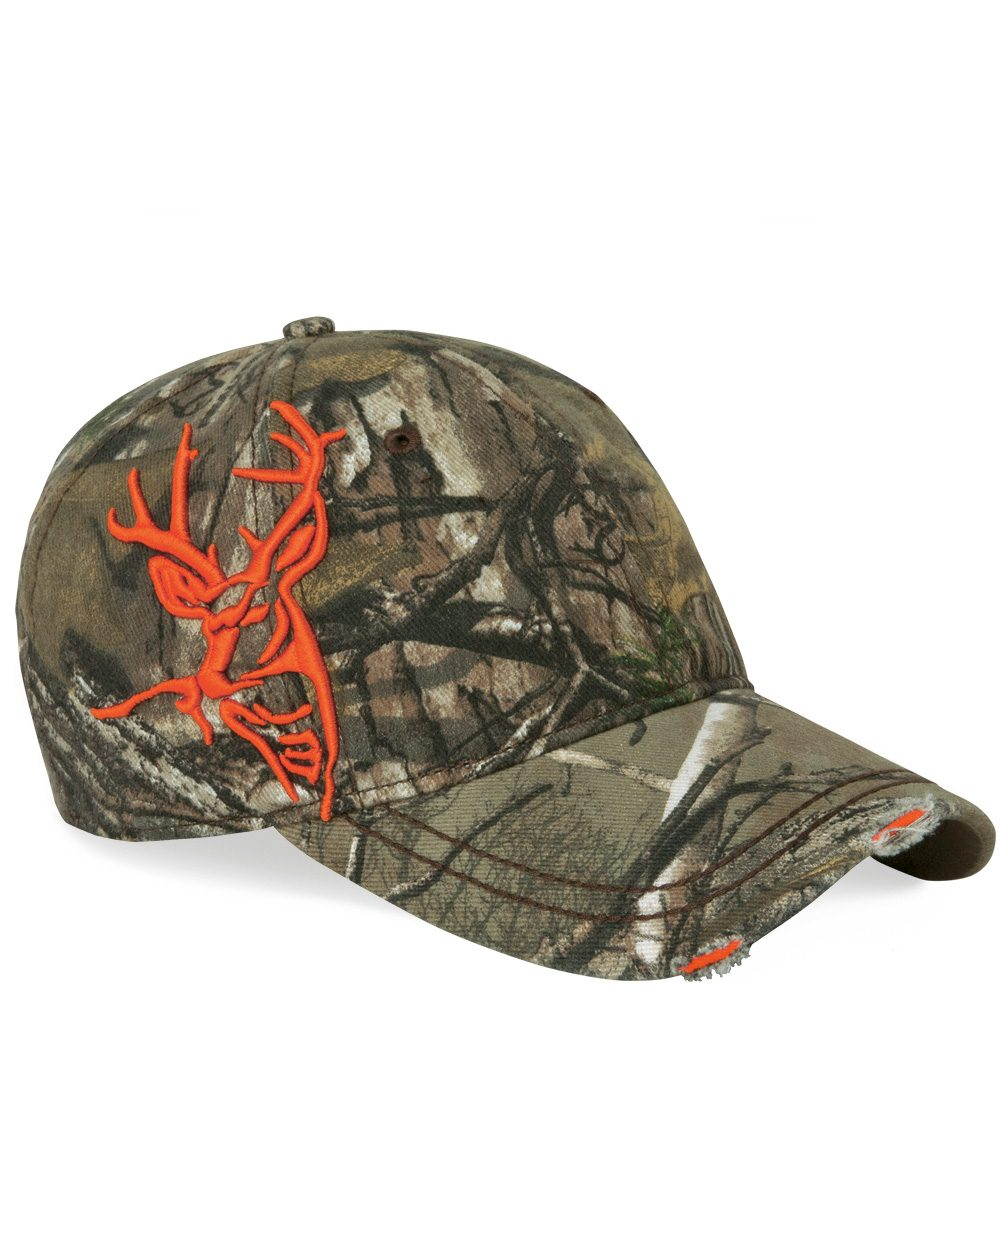 DRI DUCK 3307 - 3D Buck Cap